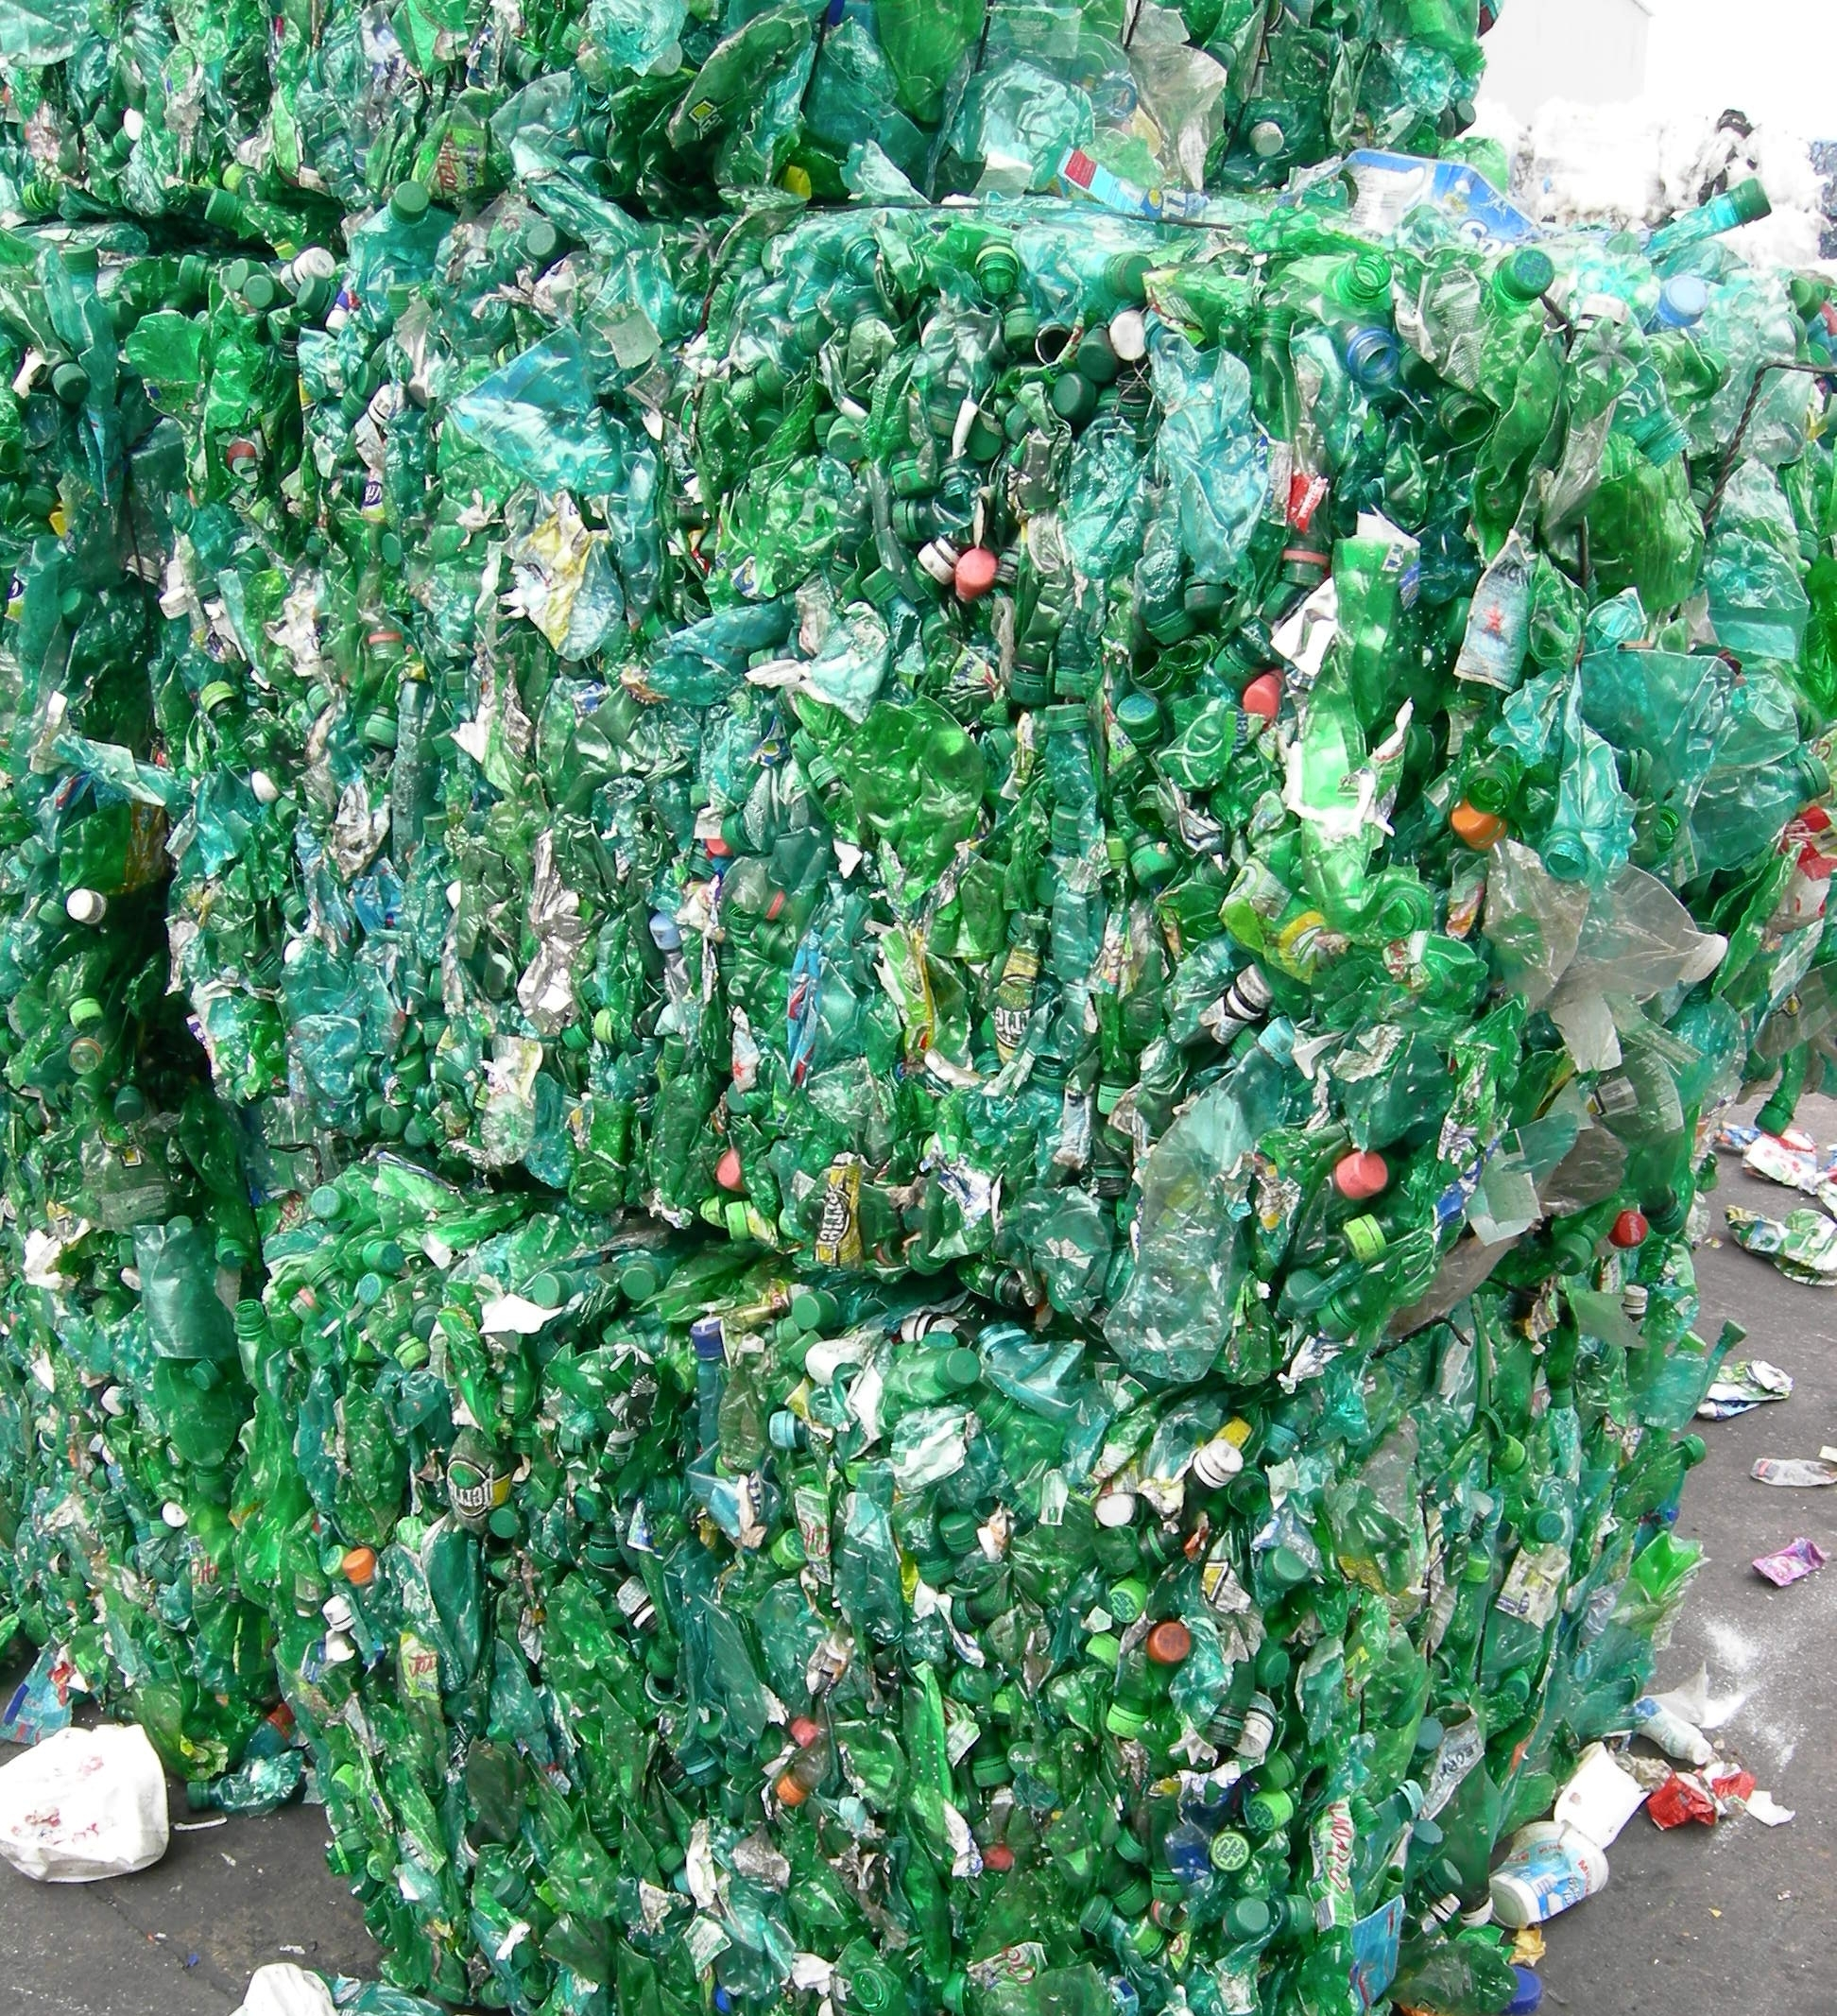 Germany_Helman_Plastic-bottle-bales-green-1